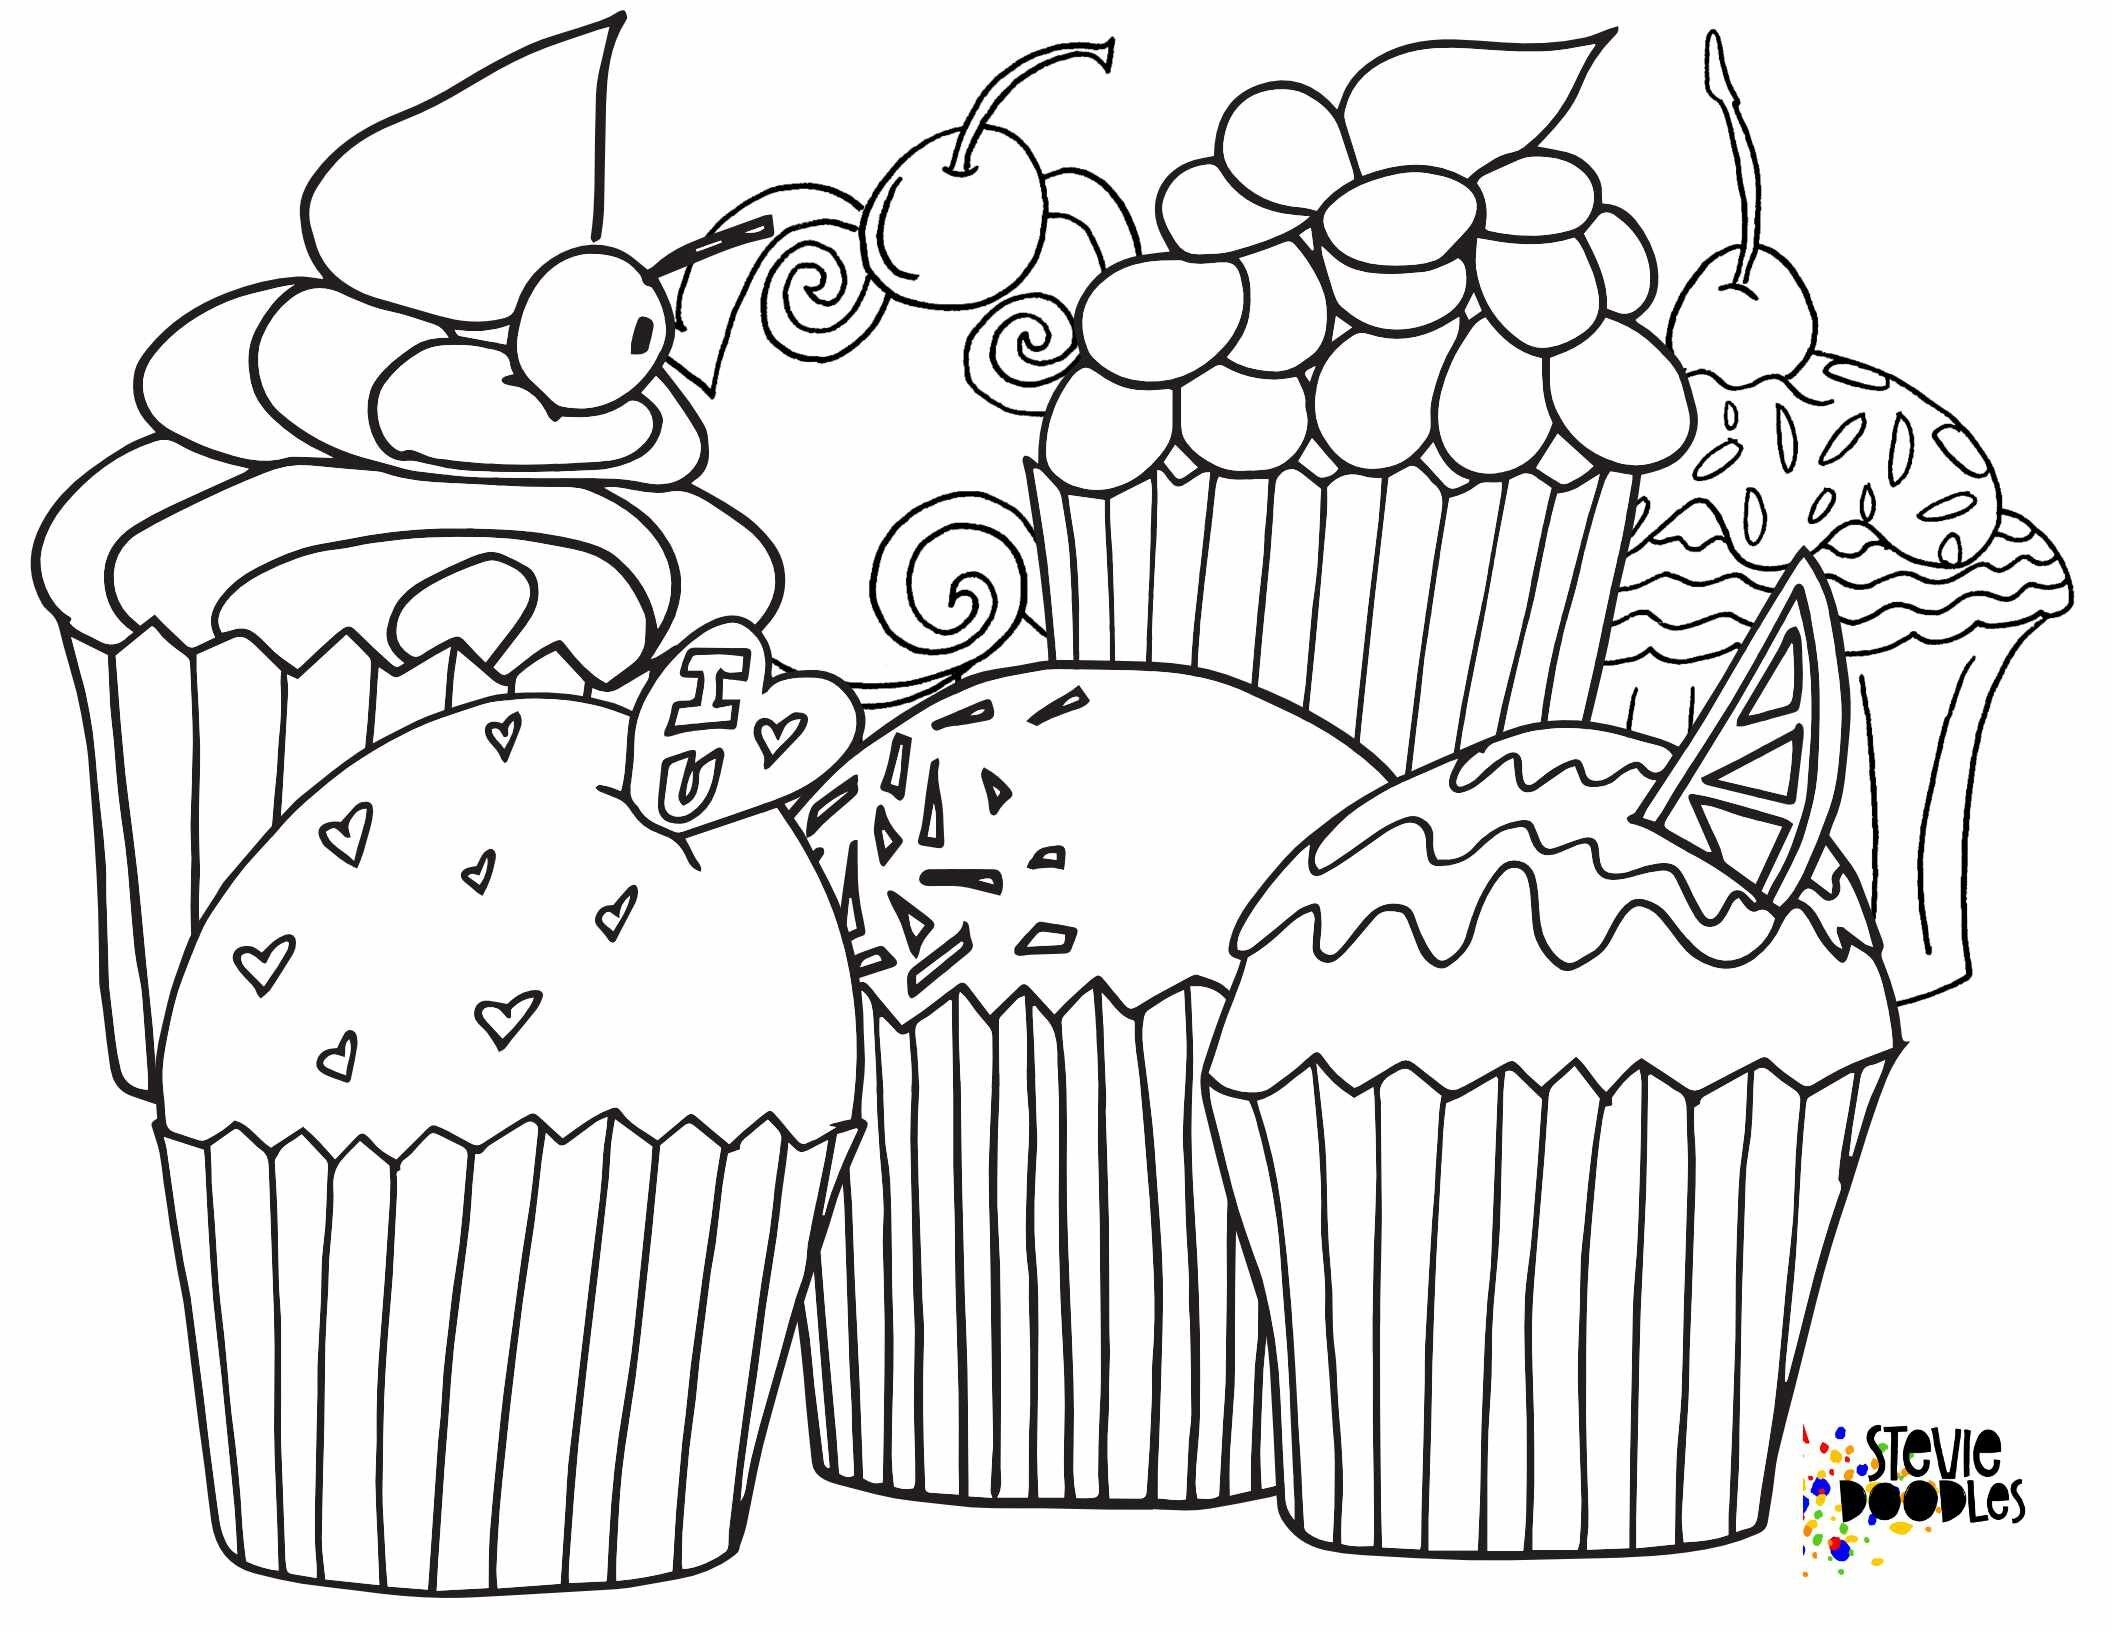 5 Free Cupcake Coloring Pages — Stevie Doodles | Cupcake ...